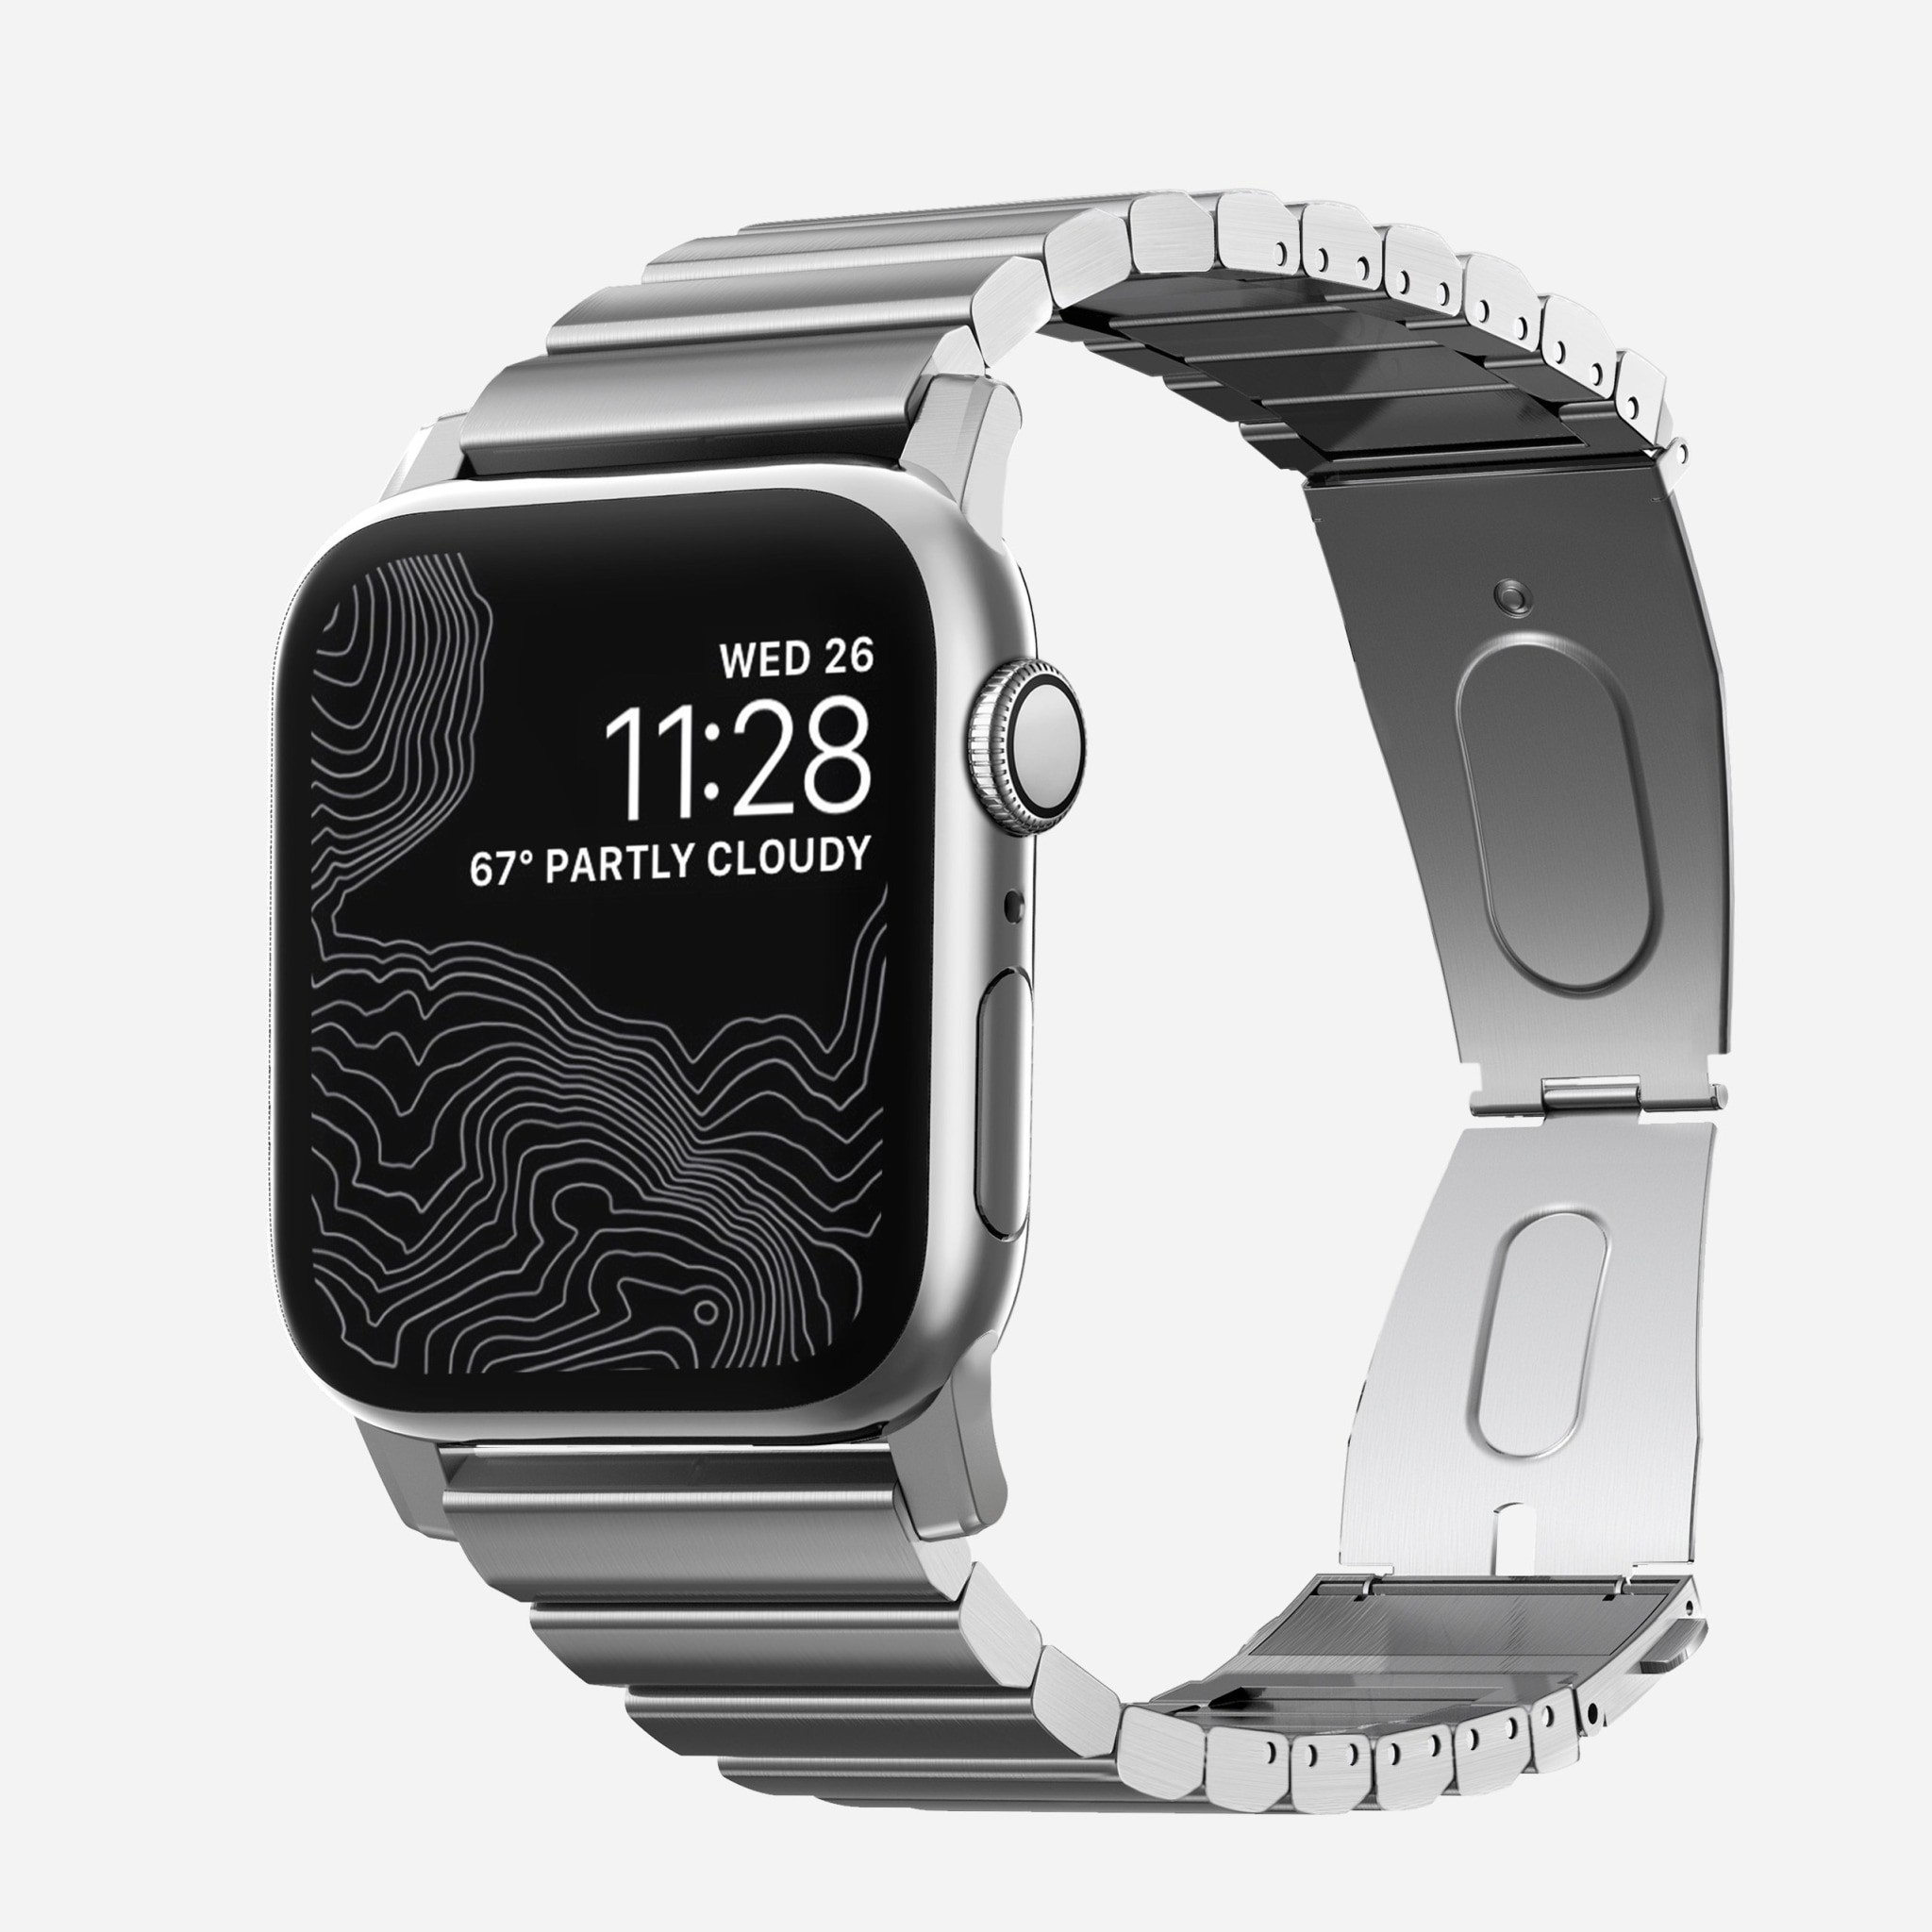 Nomad - Steel Band for Apple Watch 42/44mm - Silver, NM1A4HS000